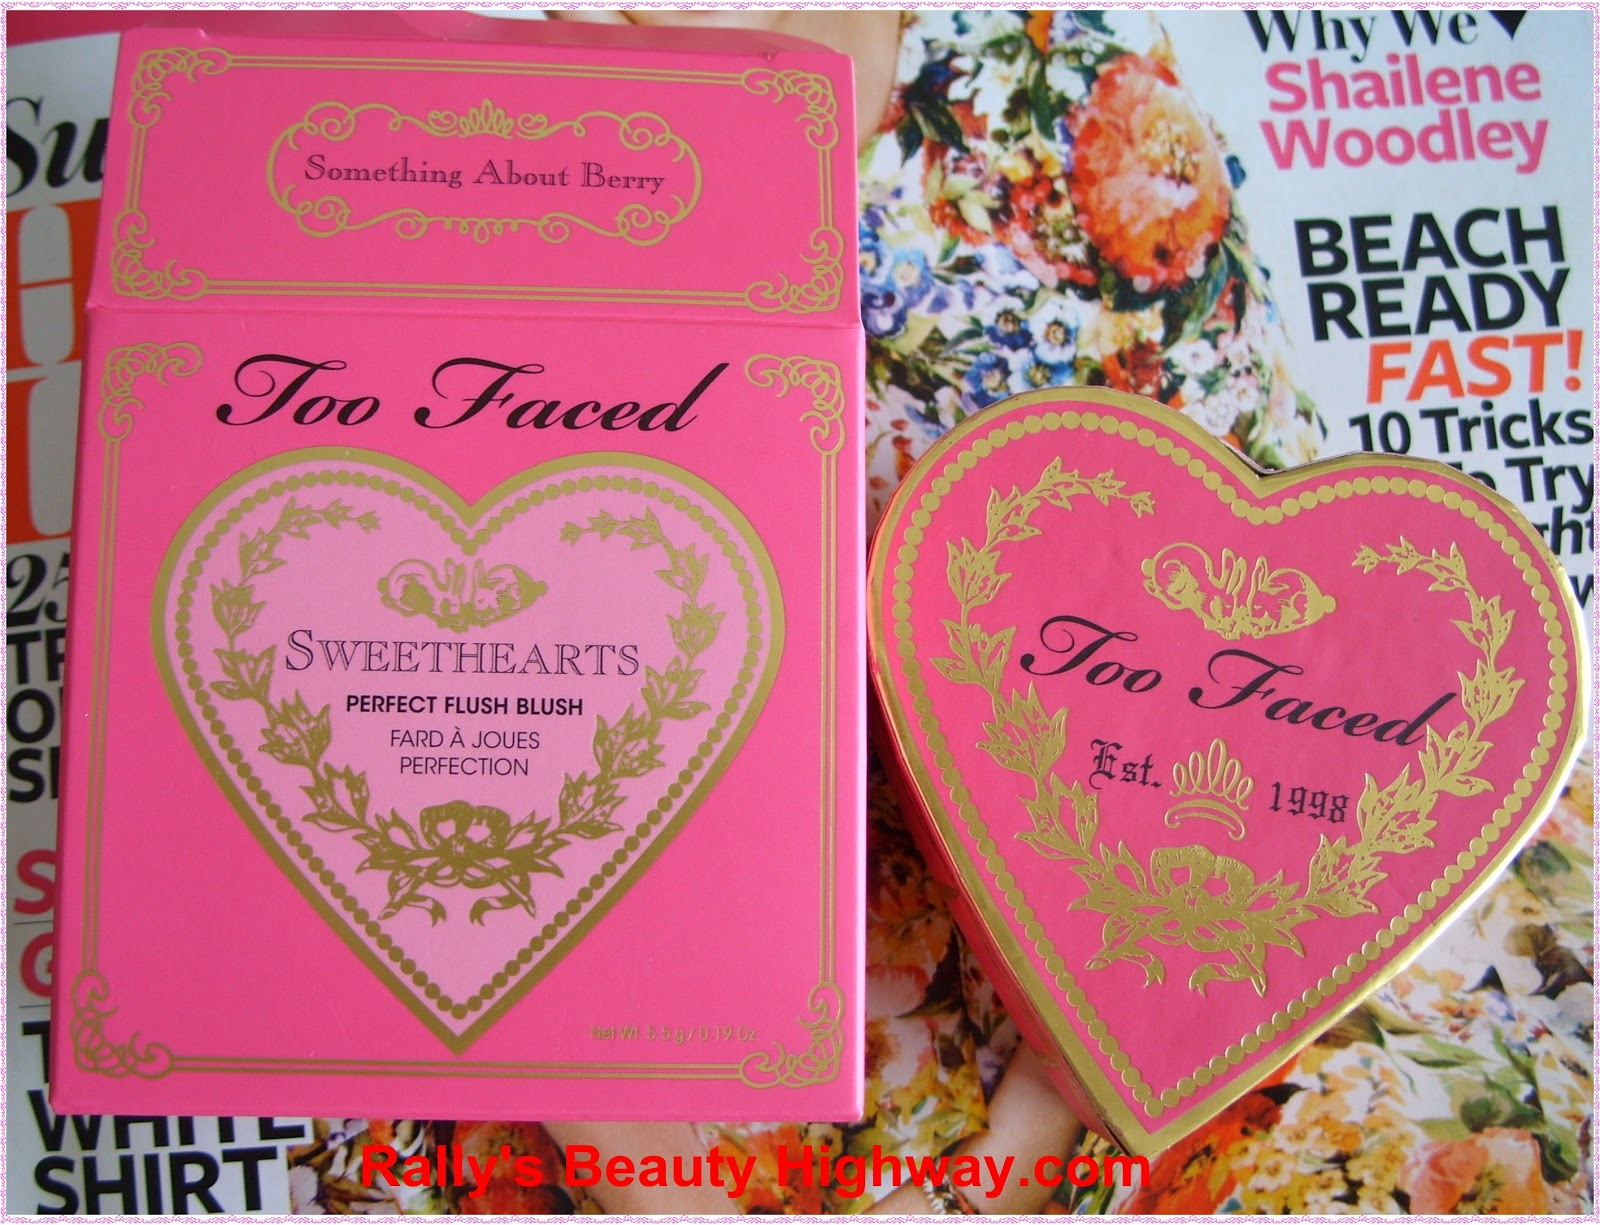 Too Faced, Blush